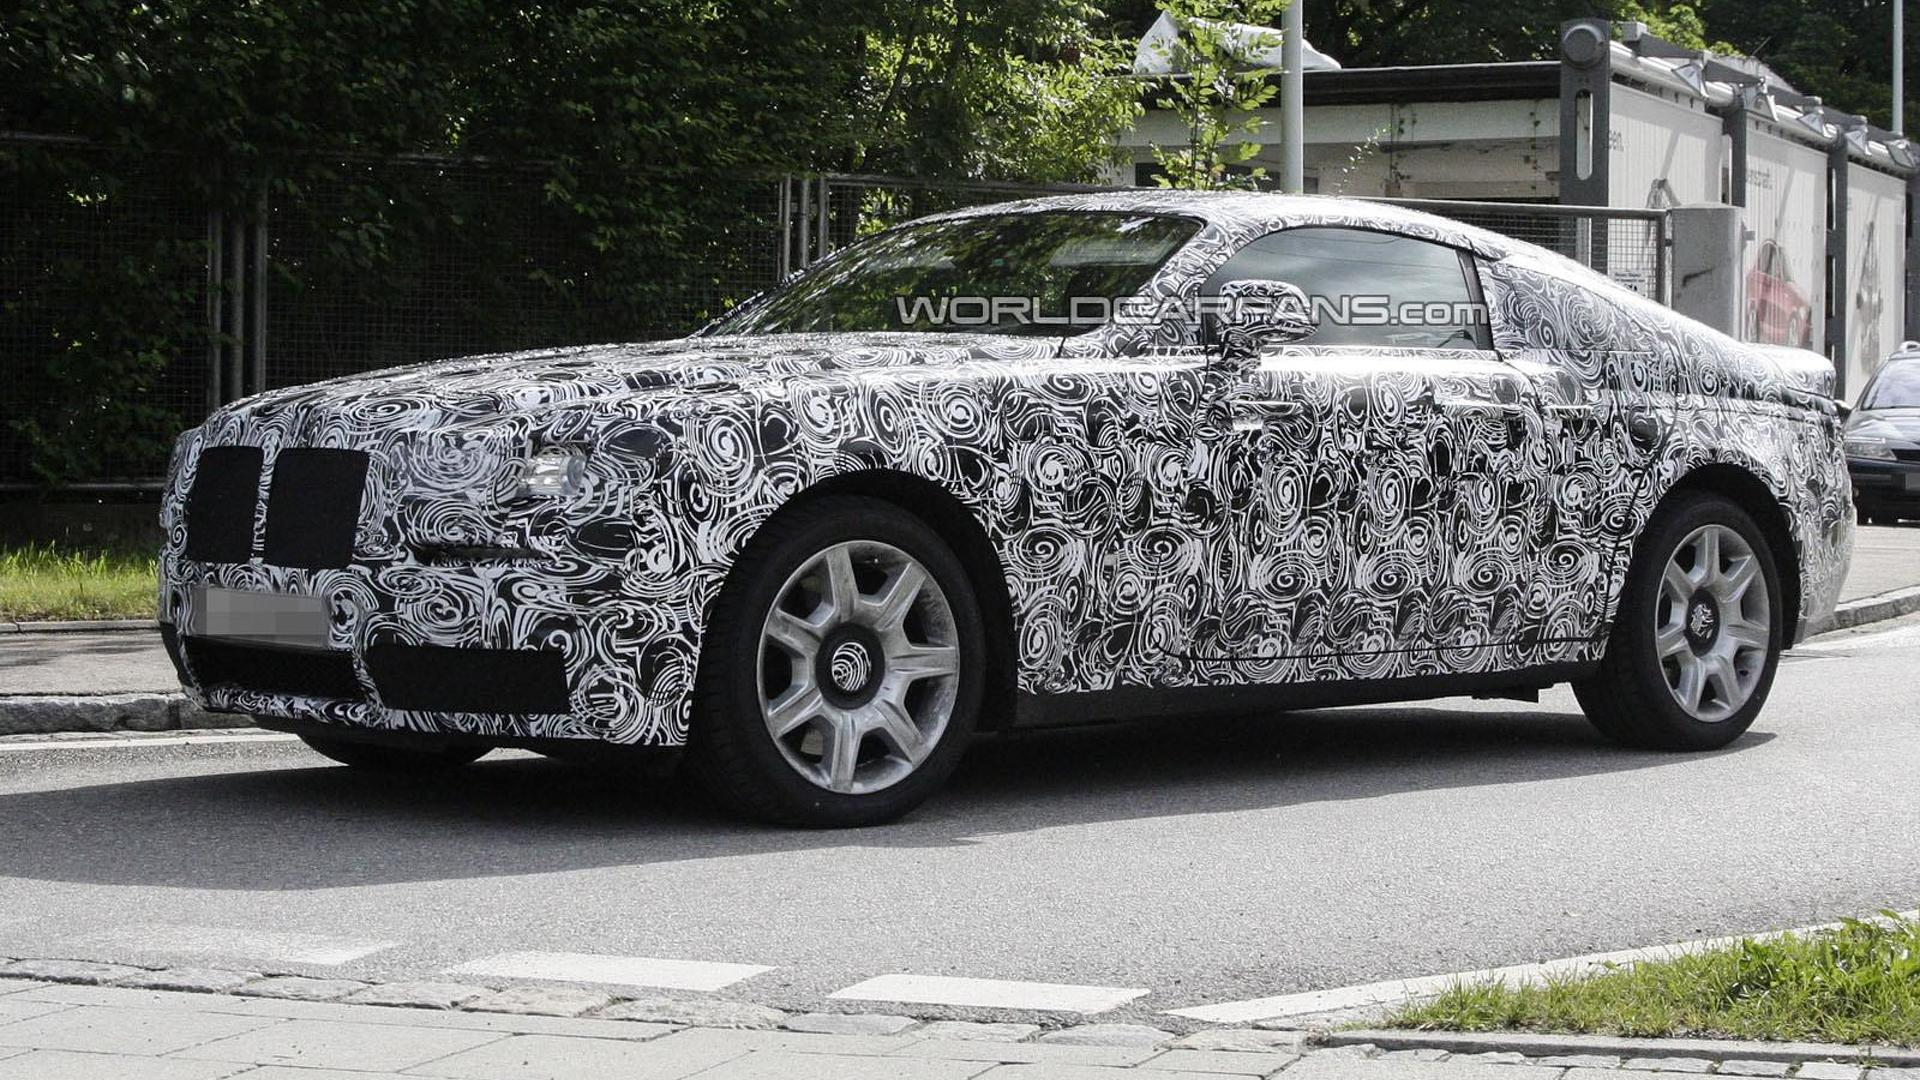 Ghost Coupe to be fastest Rolls Royce ever - more details surface